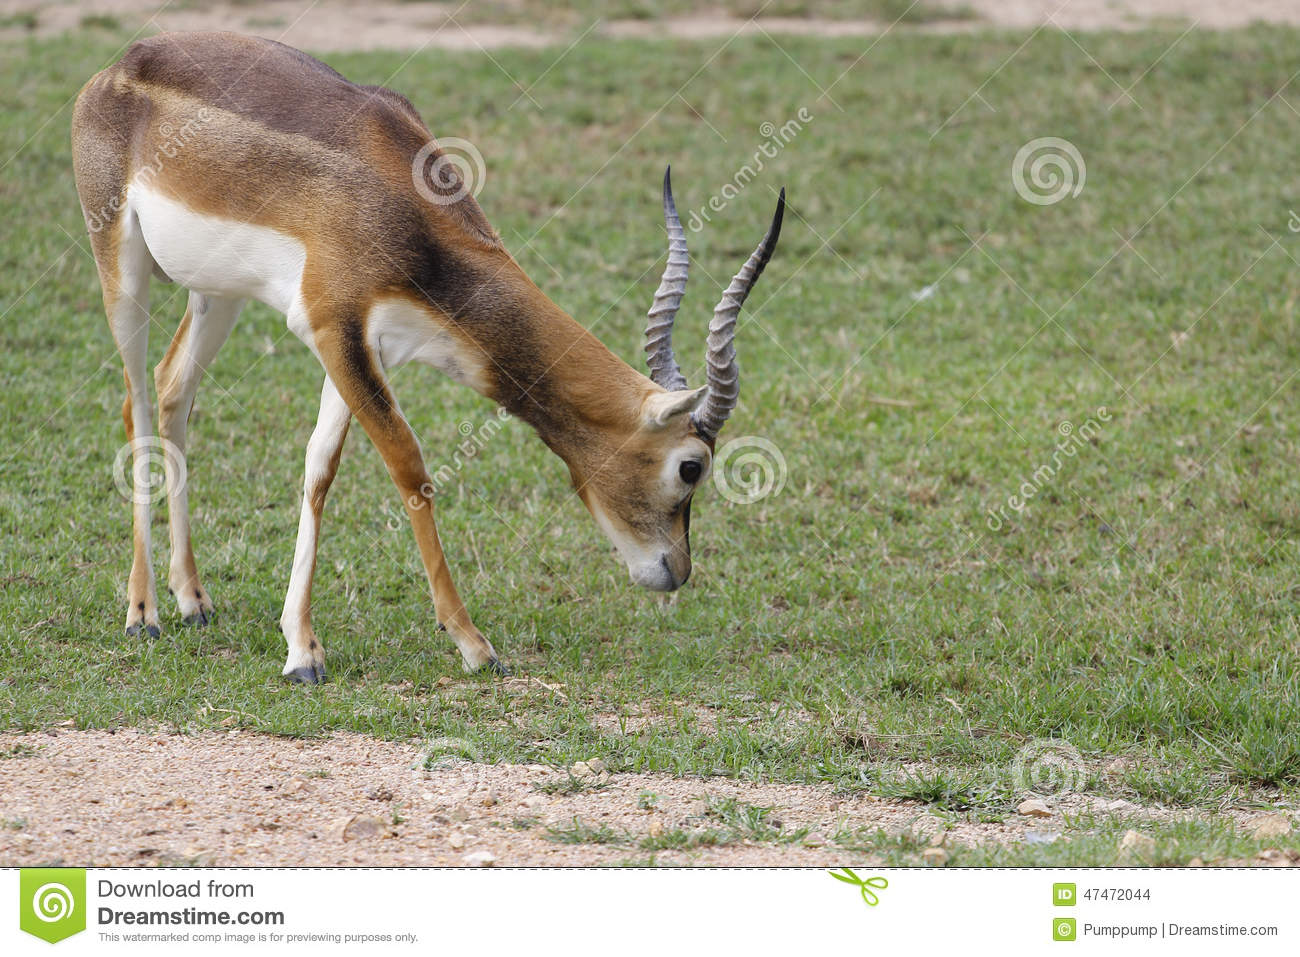 What do gazelles eat